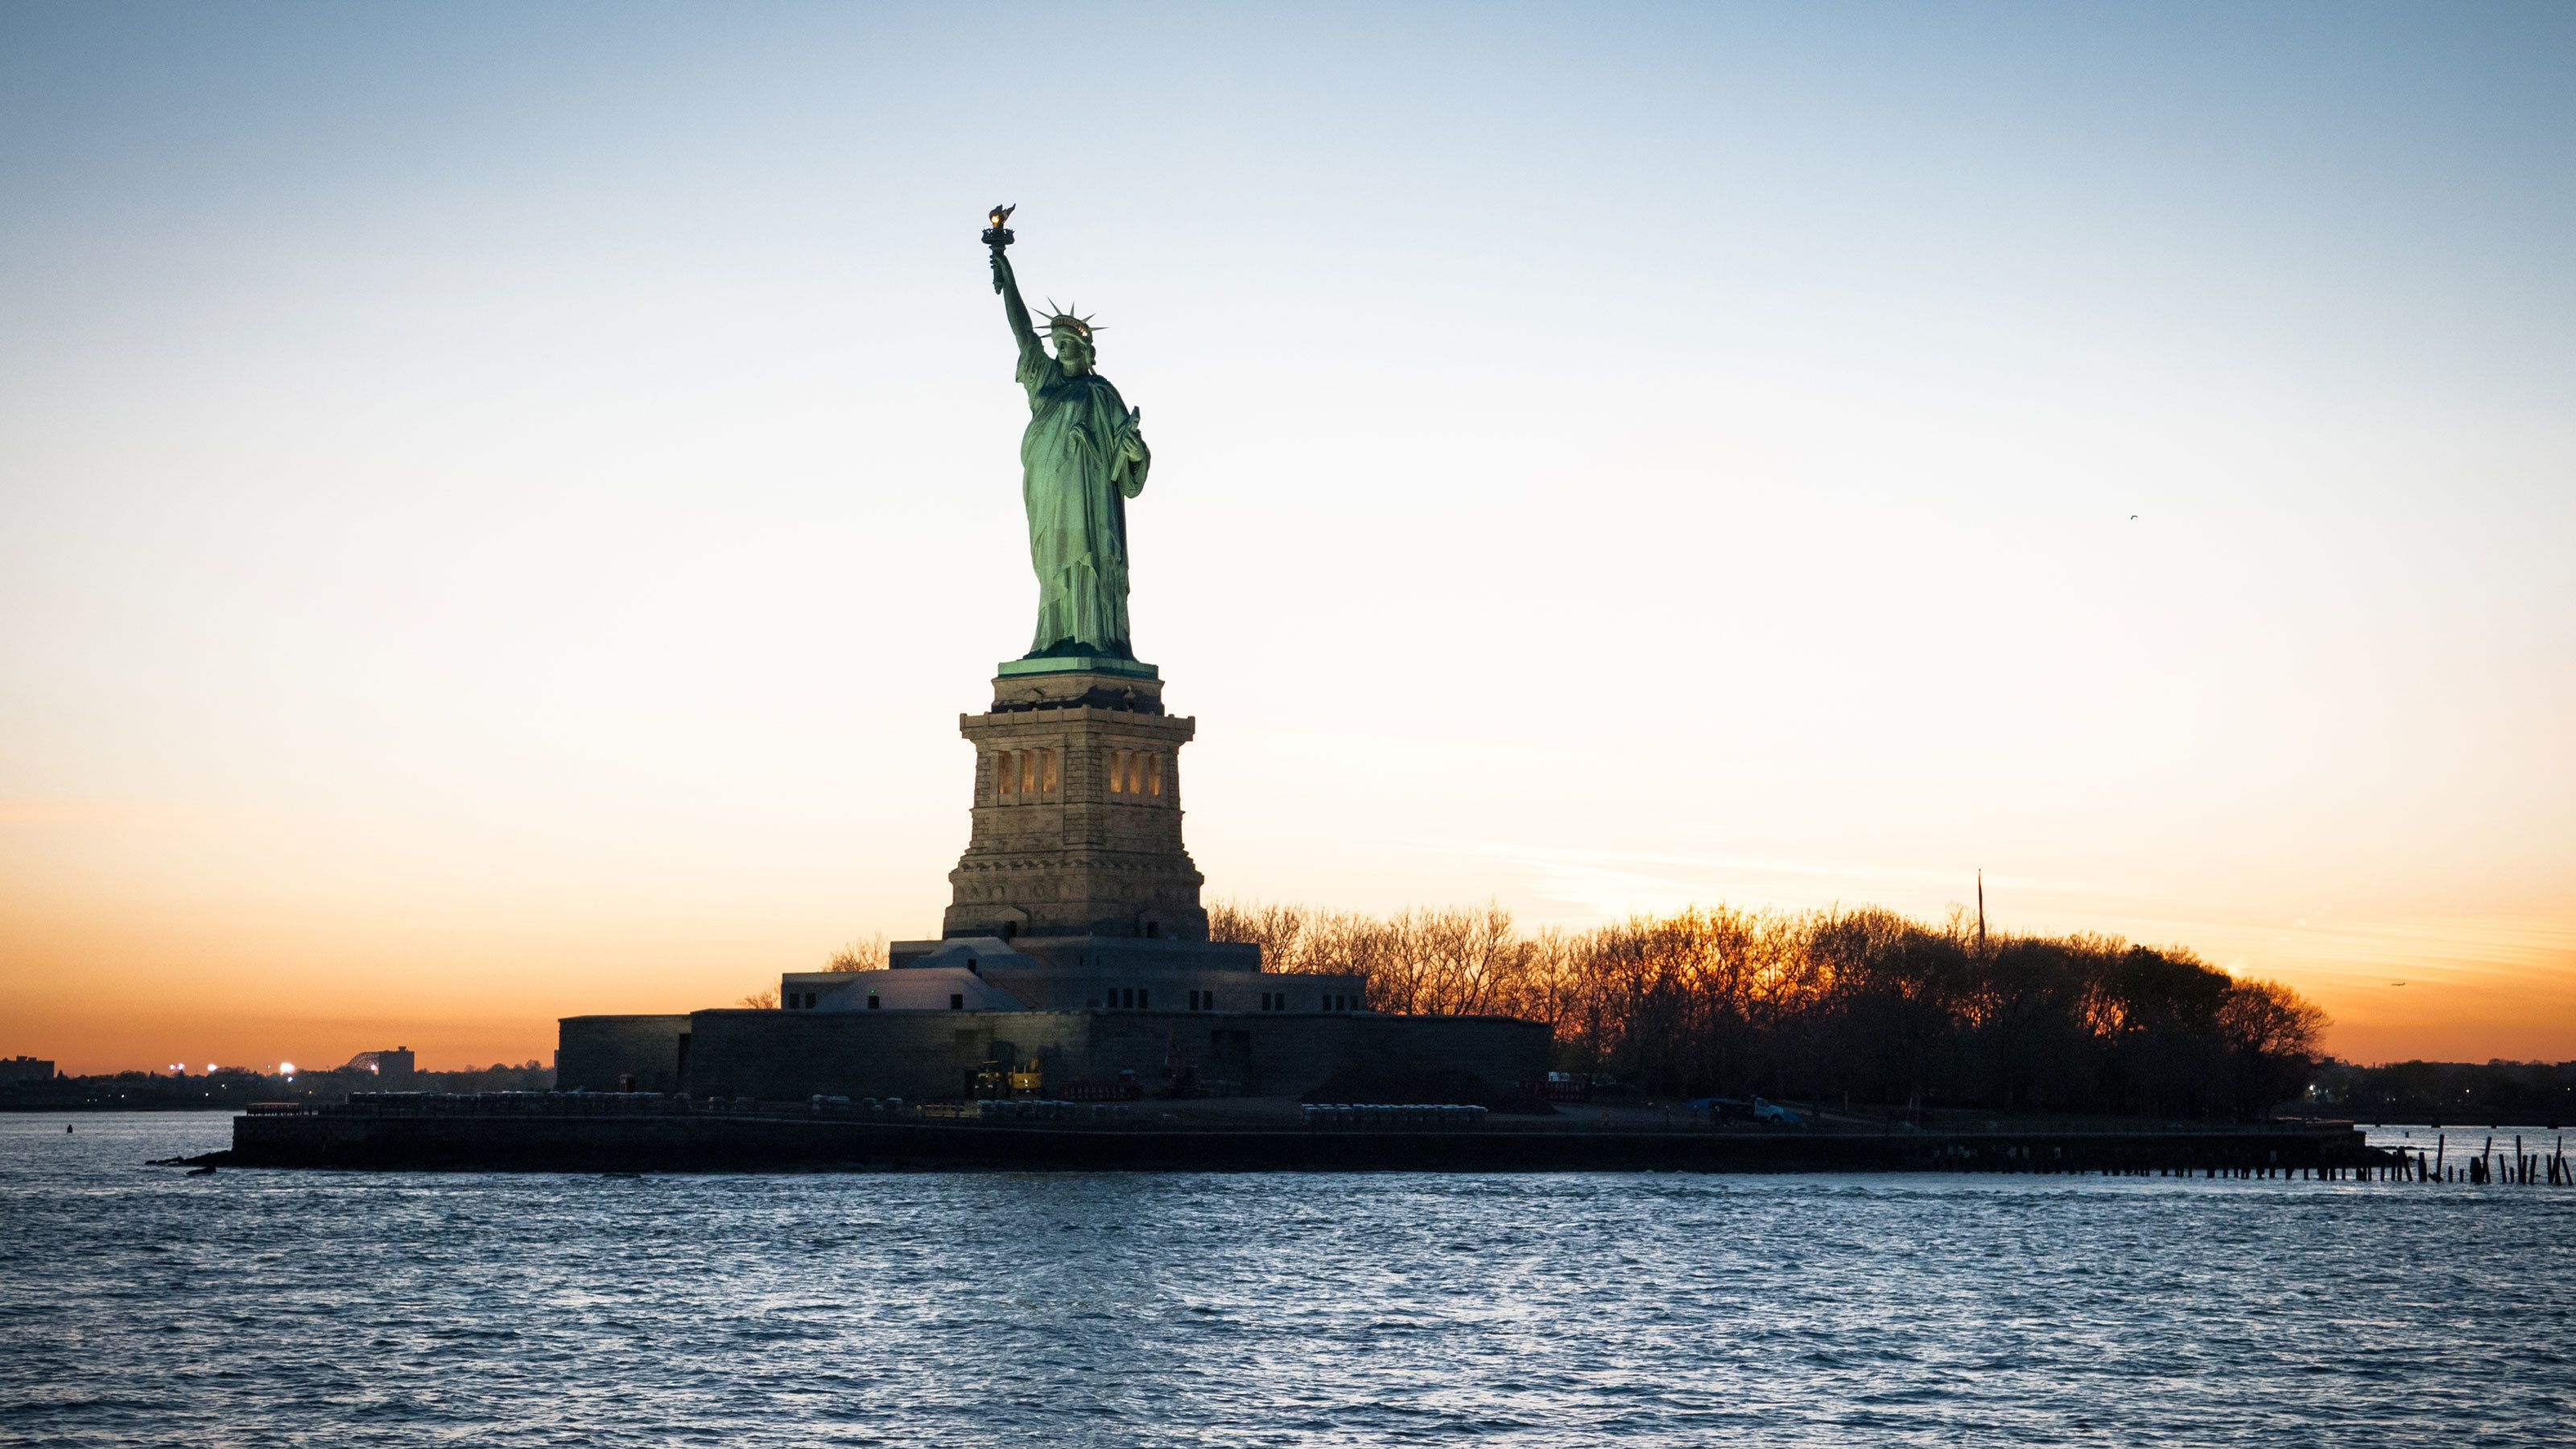 The Statue of Liberty at dusk in New York